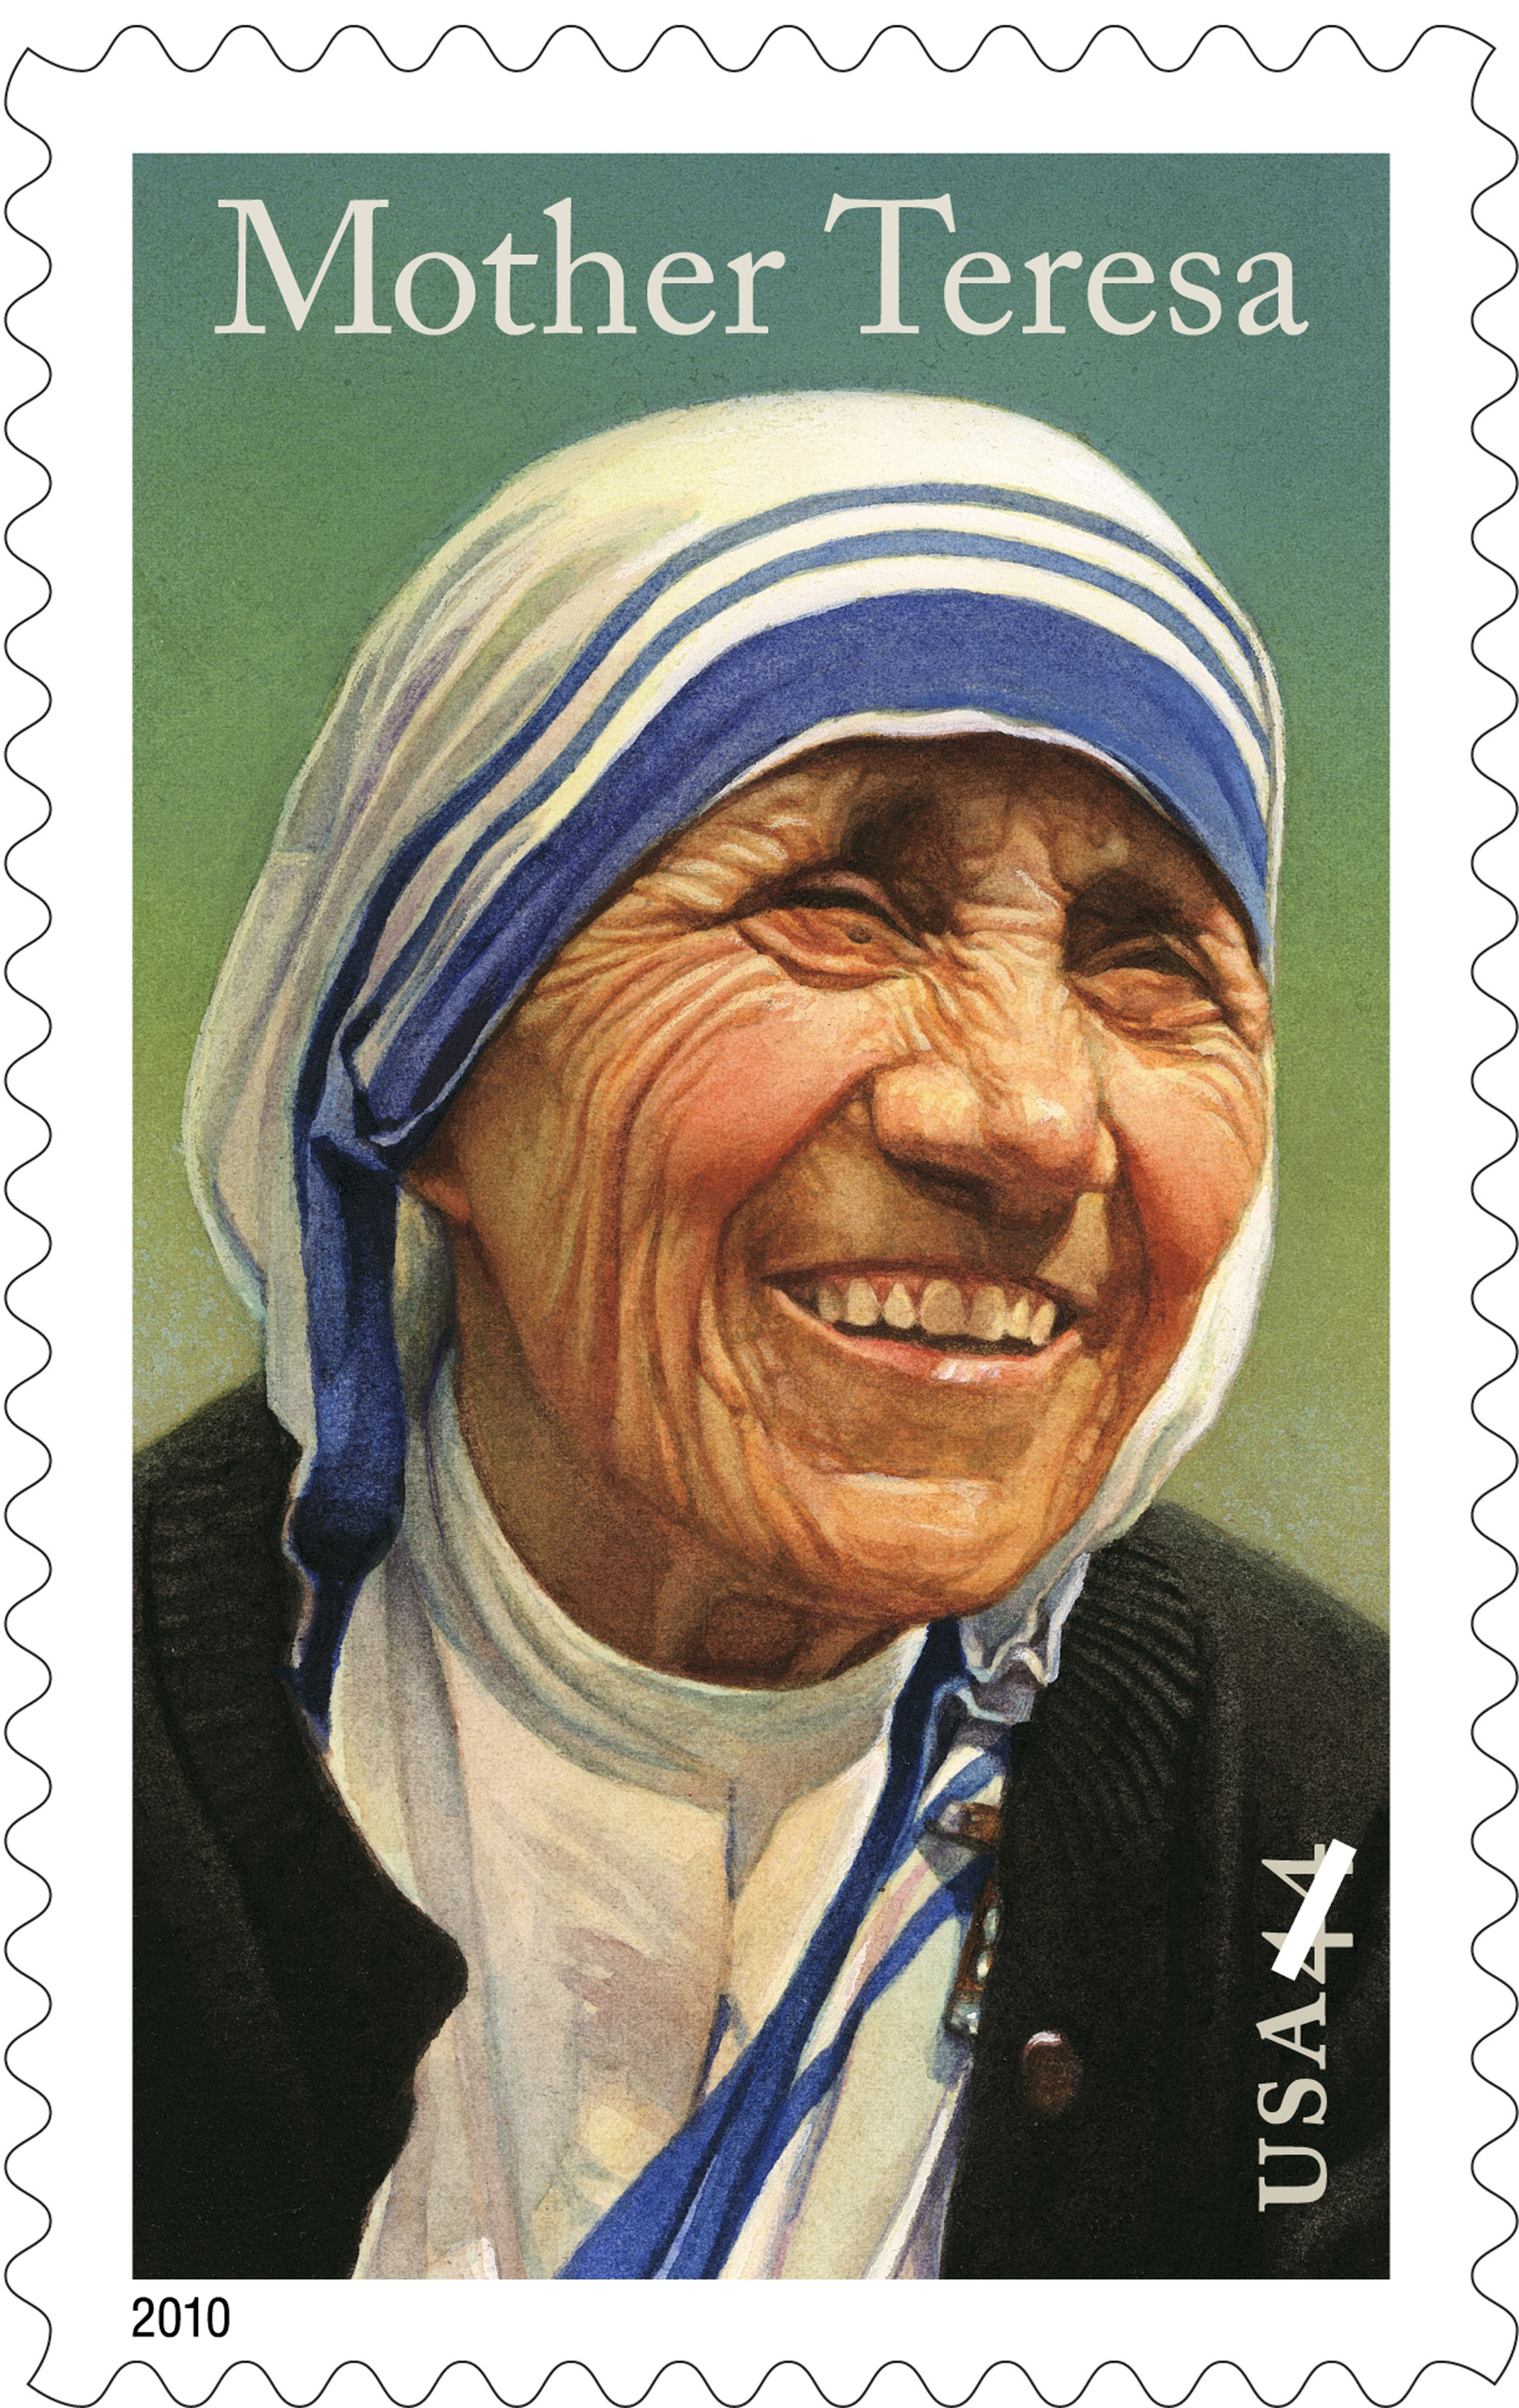 This undated handout image provided by the U.S. Postal Service shows a US$0.44 postage stamps honoring Mother Teresa. A stamp in her honor will go on ...